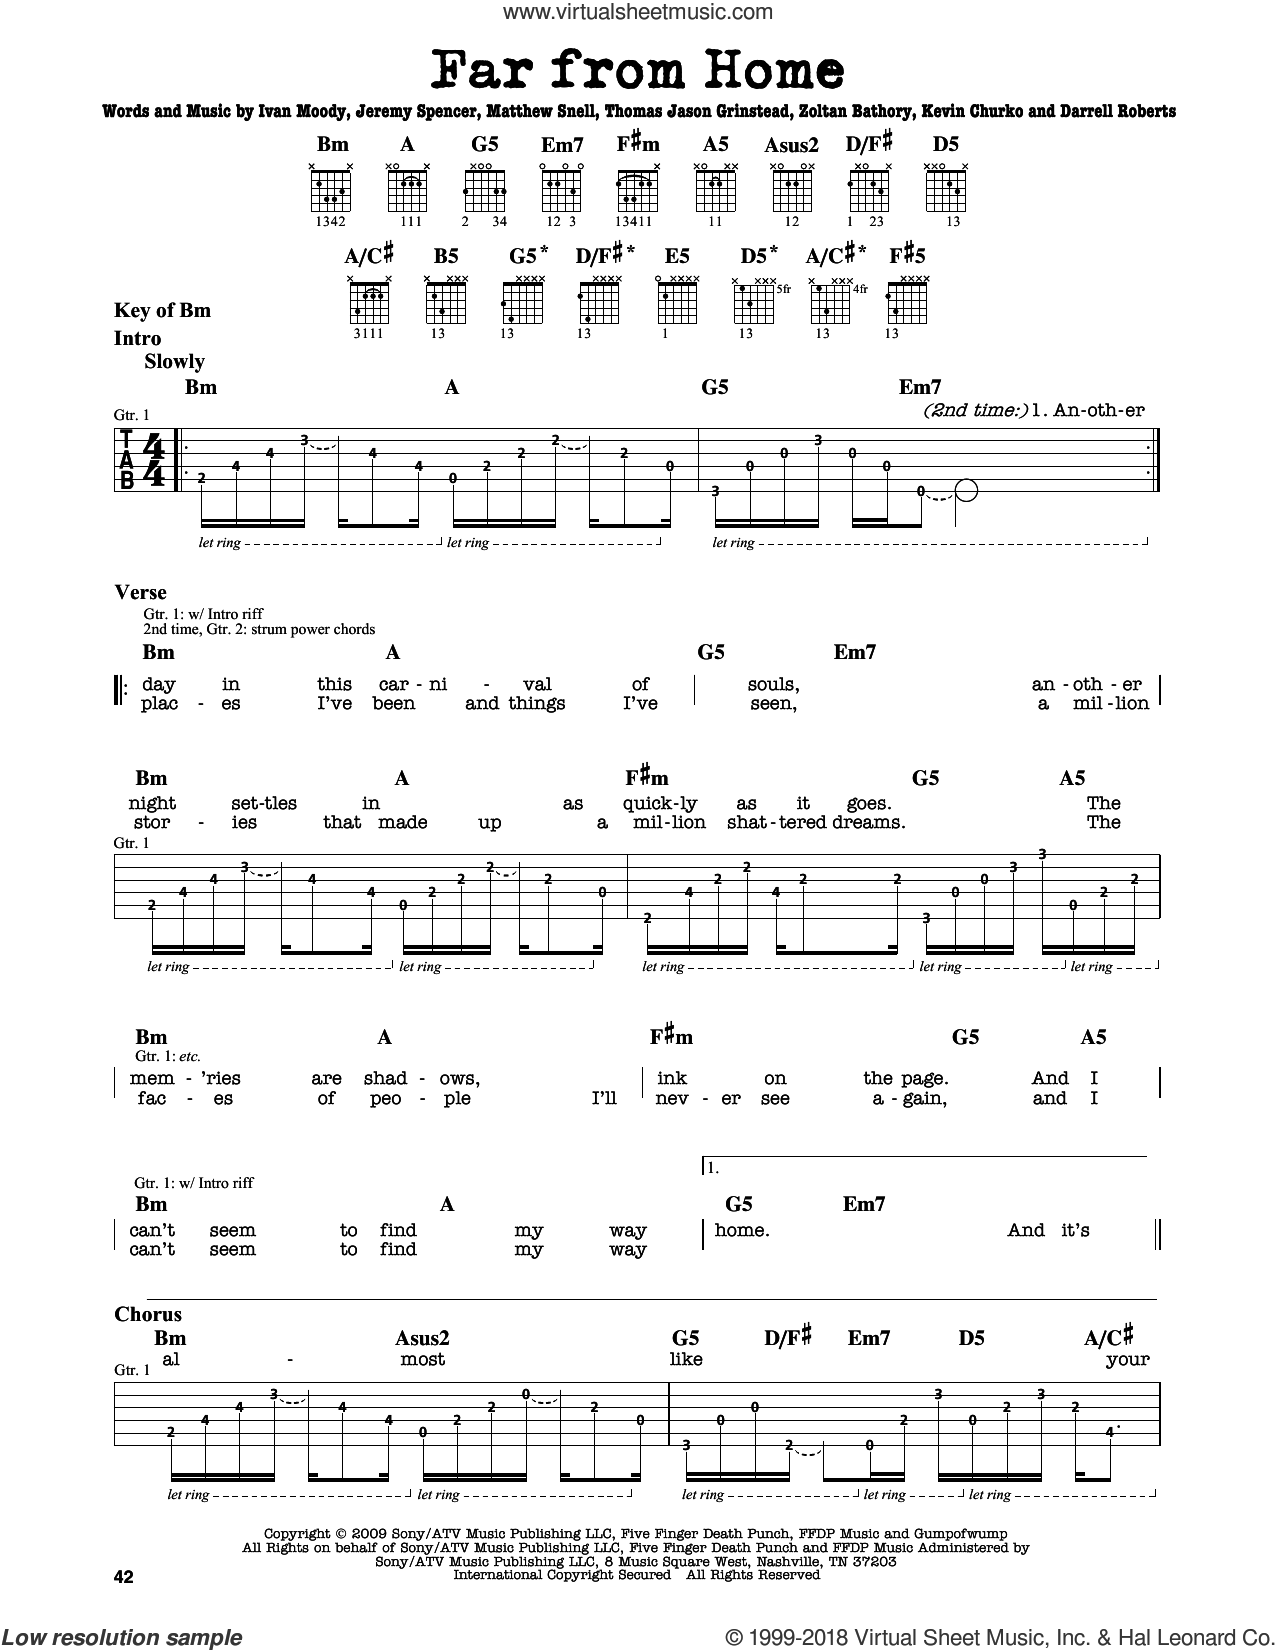 Far From Home sheet music for guitar solo (lead sheet) by Five Finger Death Punch, Darrell Roberts, Ivan Moody, Jason Hook, Jeremy Spencer, Kevin Churko, Matthew Snell and Zoltan Bathory, intermediate guitar (lead sheet). Score Image Preview.